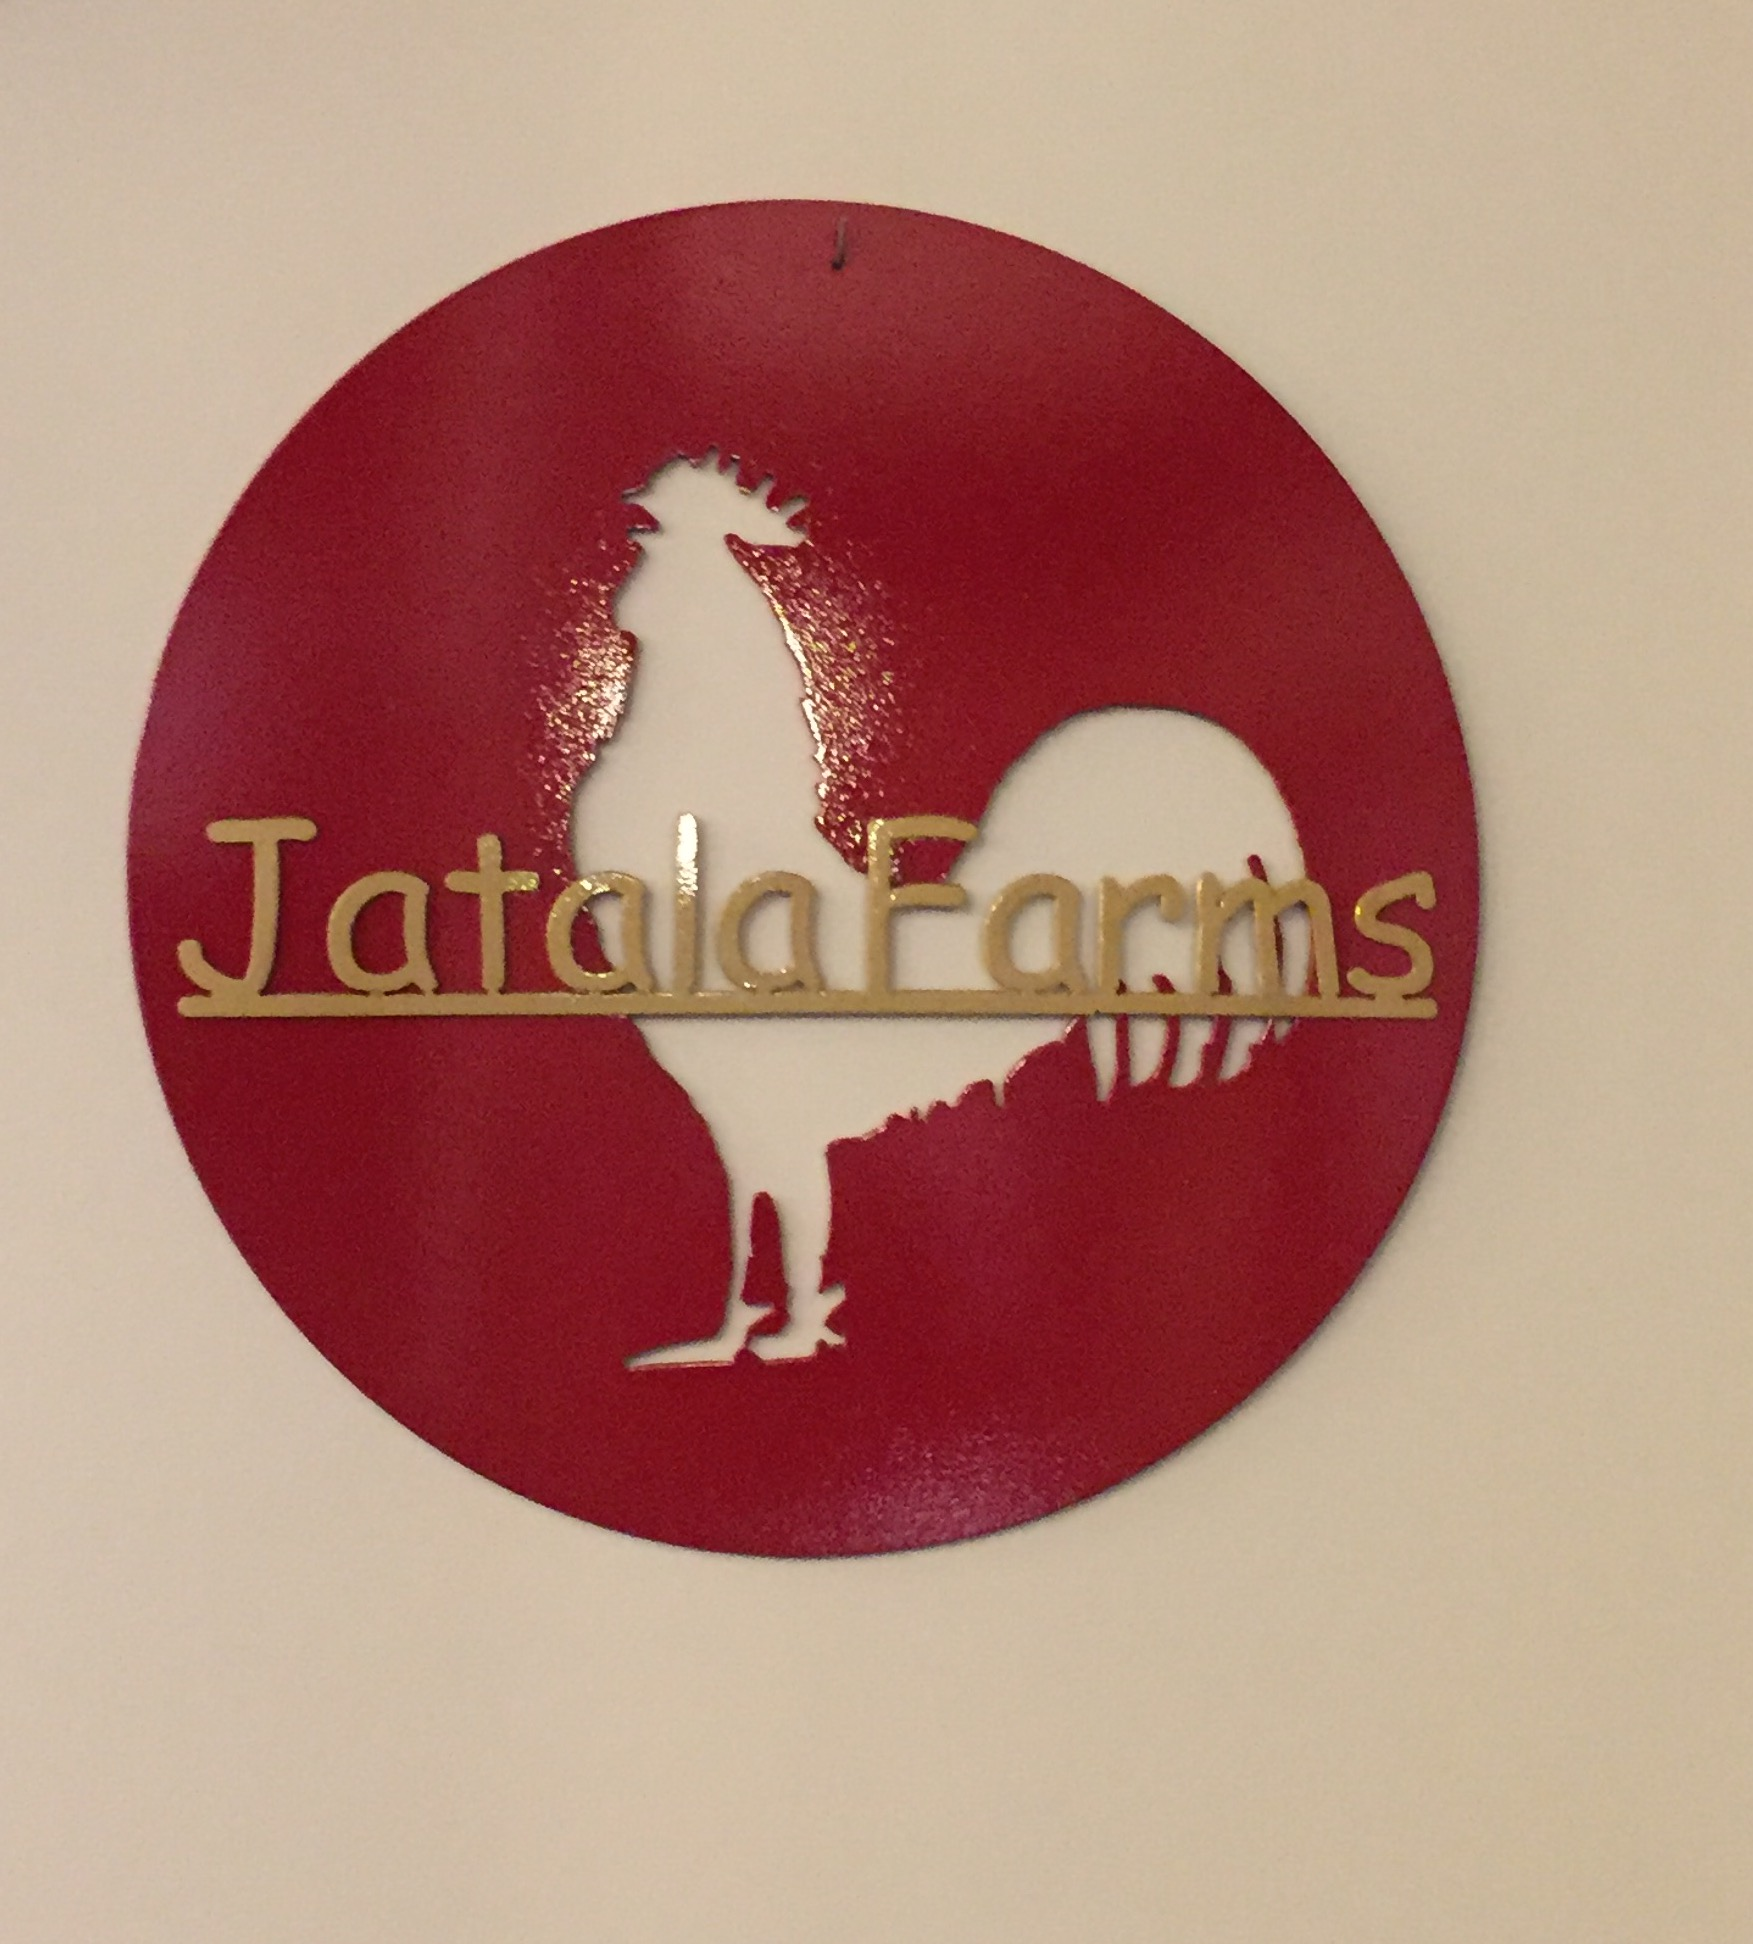 Jatala farms